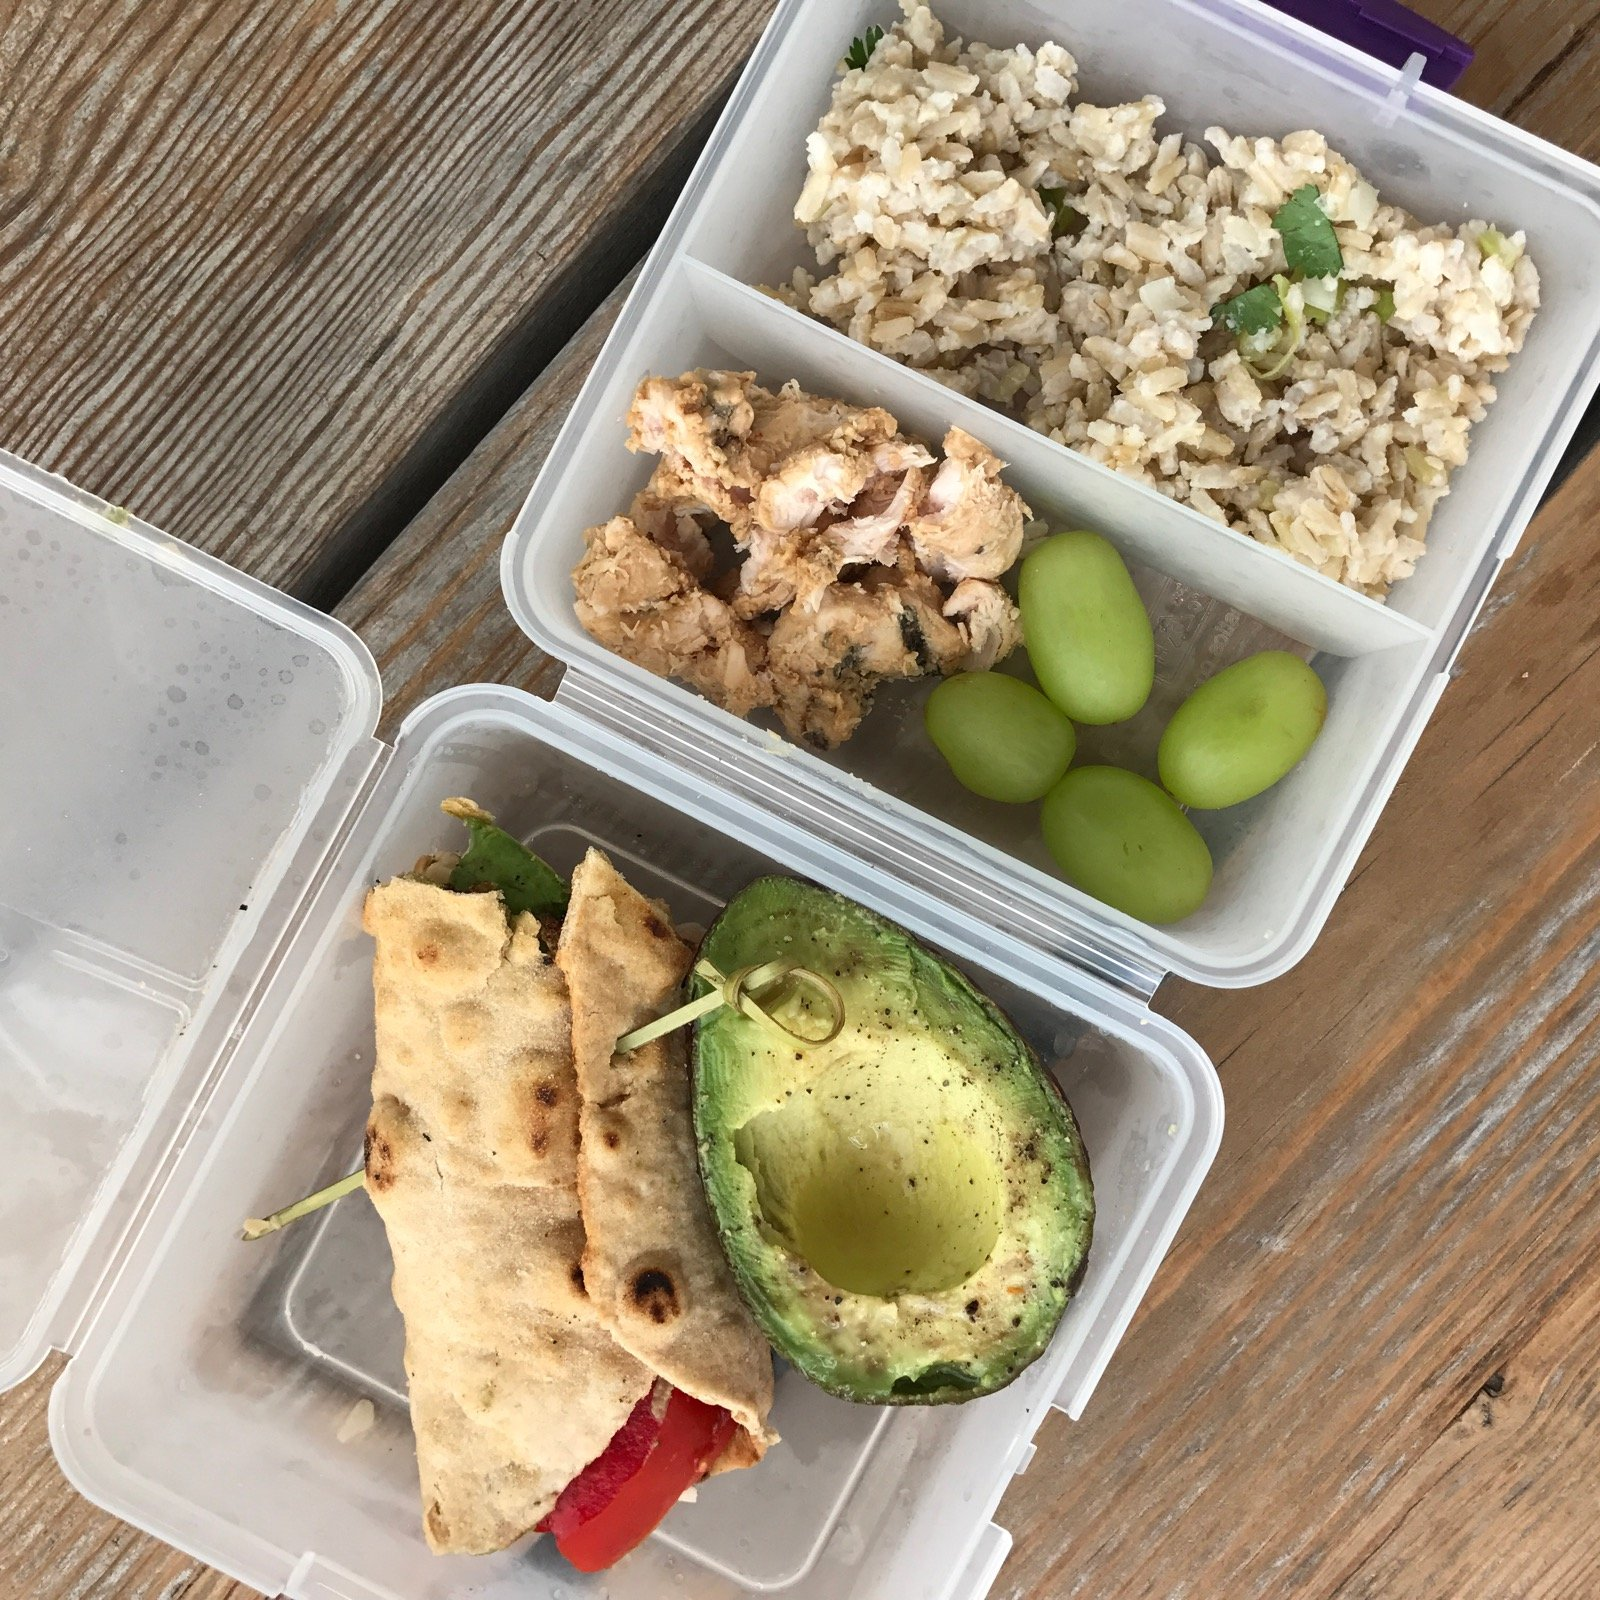 Packed school lunch of Hummus/cheese/tomato/lettuce wrap Avocado (she squirted a little lime juice on it) Grapes Leftover Chicken Satay and Coconut Rice (both served cold)